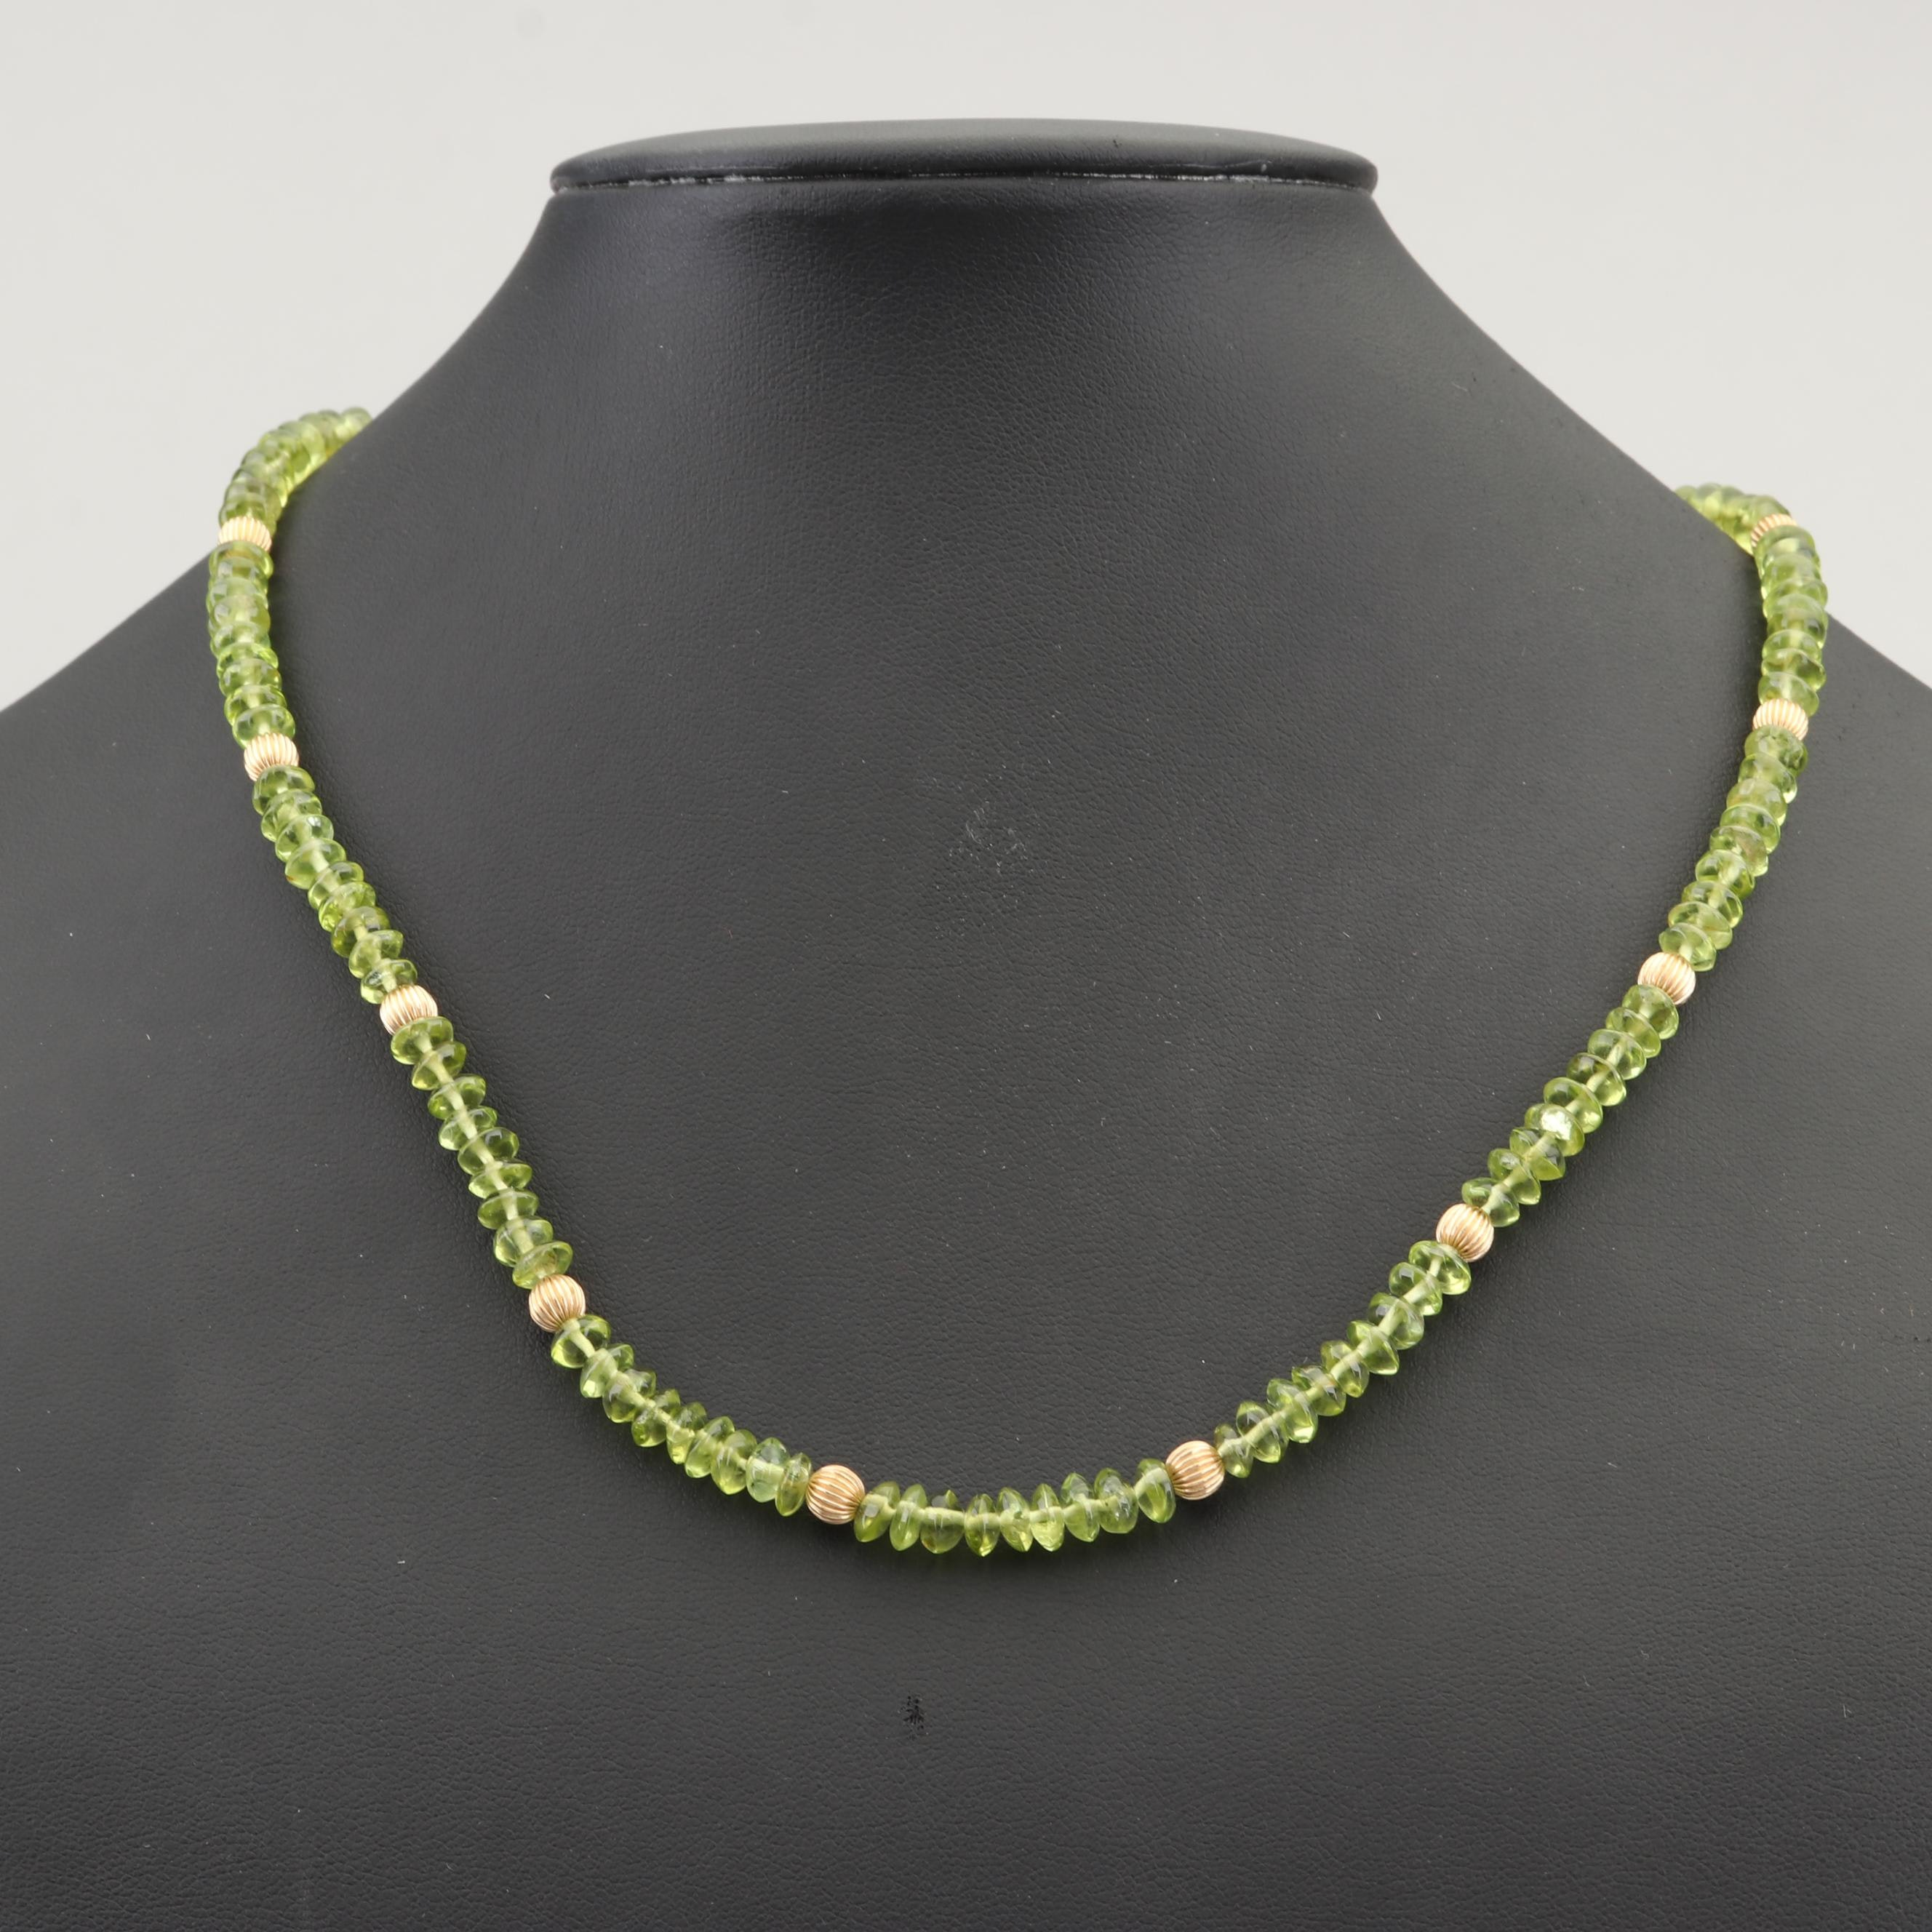 10K Yellow Gold Fluted Bead and Peridot Bead Necklace with 14K Gold Clasp